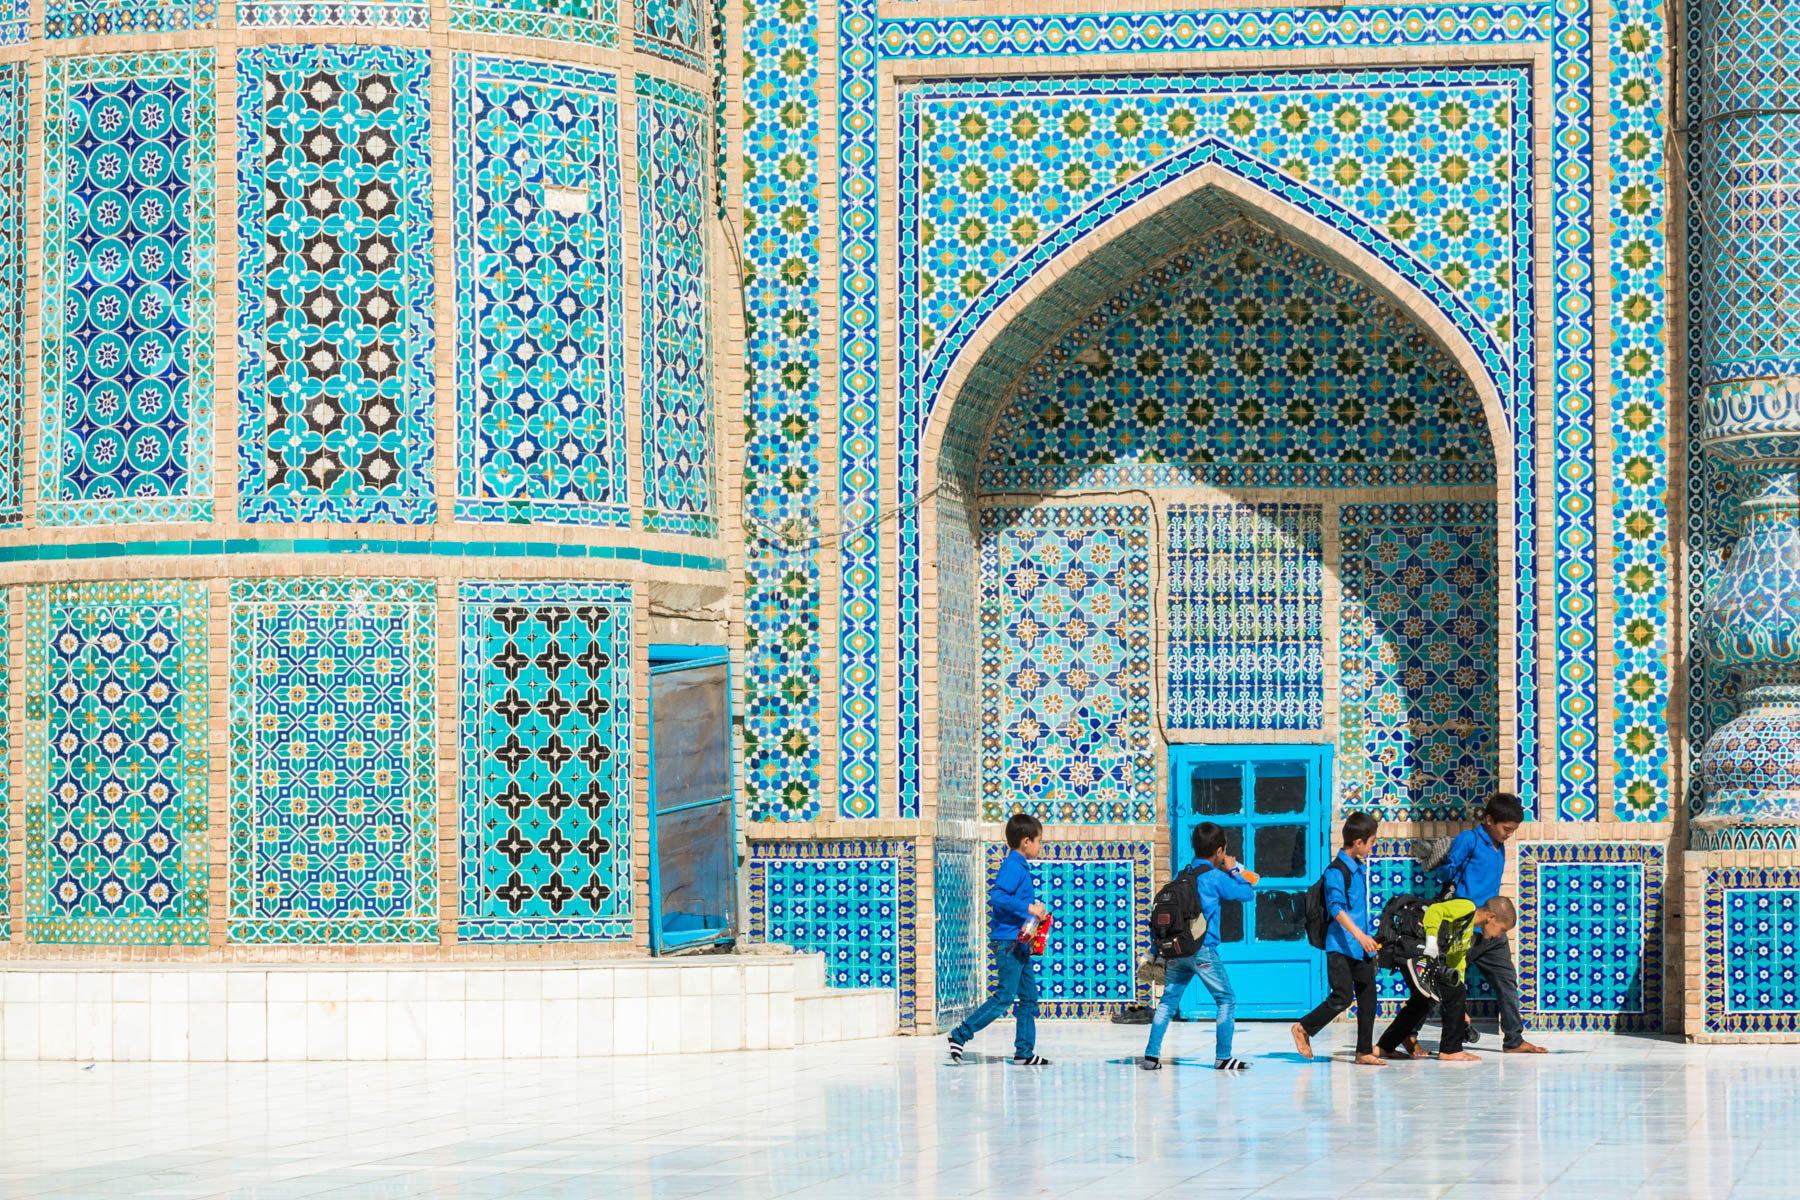 Photos of Mazar-i-Sharif, Afghanistan - Young boys playing in front of the Blue Mosque (Shrine to Ali) after school - Lost With Purpose